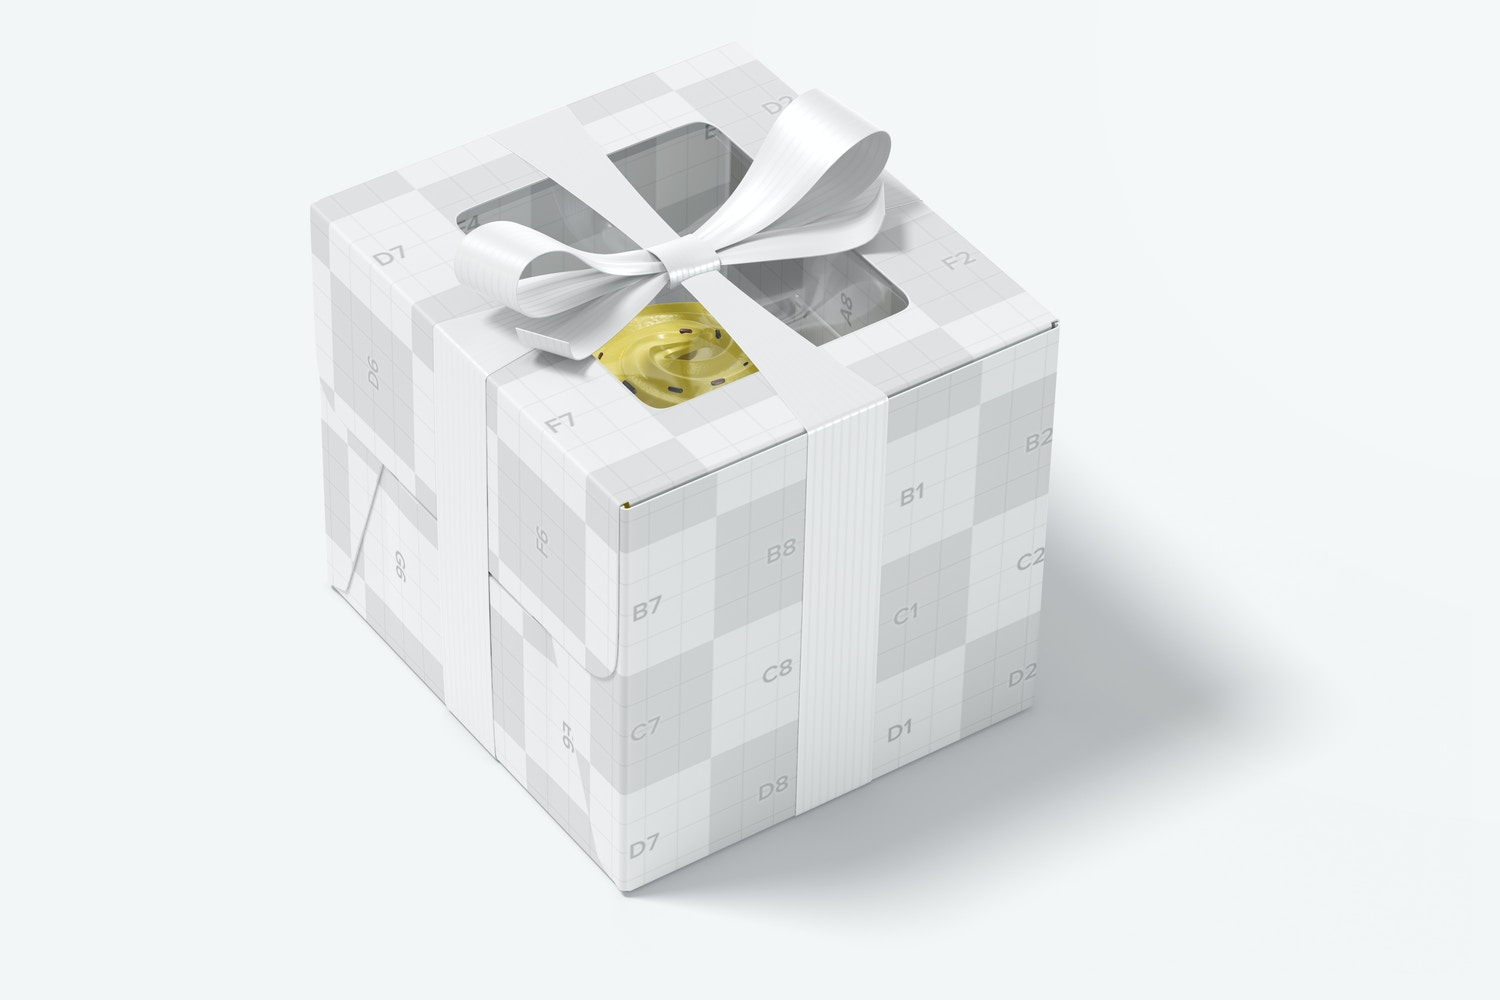 The box and the ribbon are customizable areas.